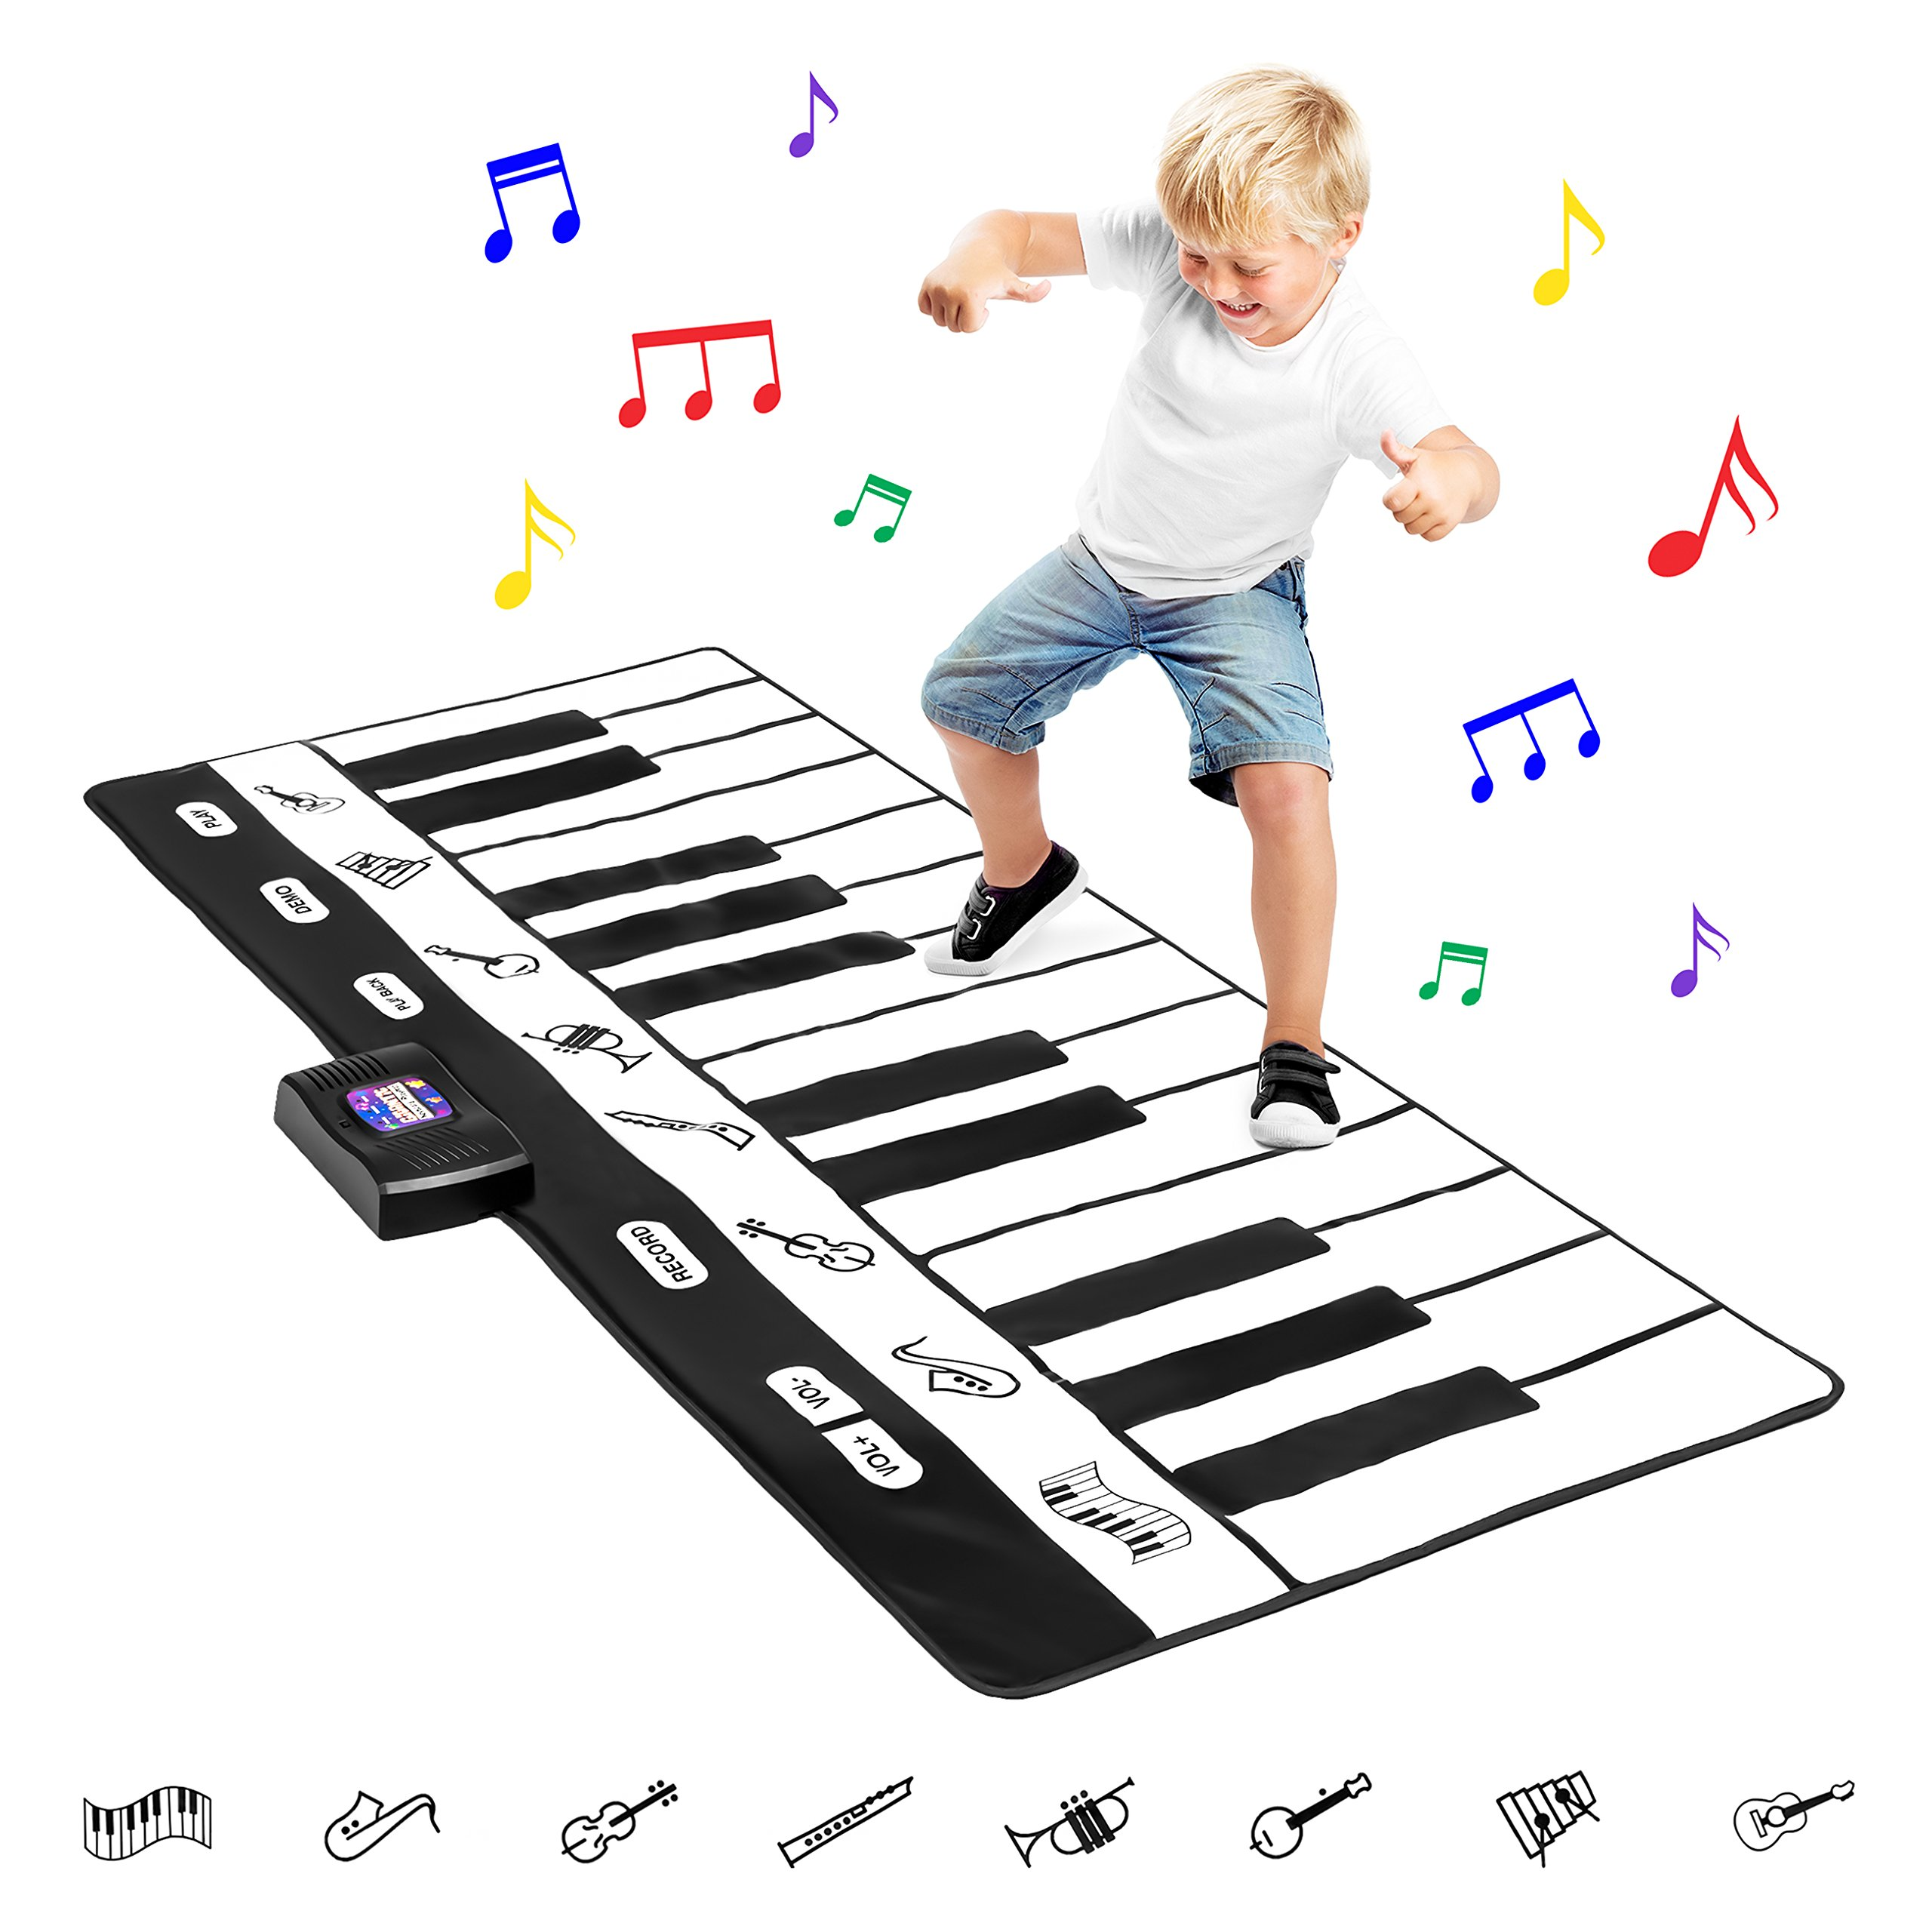 Best Choice Products 71-Inch Vinyl 24-Key Keyboard Playmat with 8 Settings and Recorder, Black/White by Best Choice Products (Image #1)